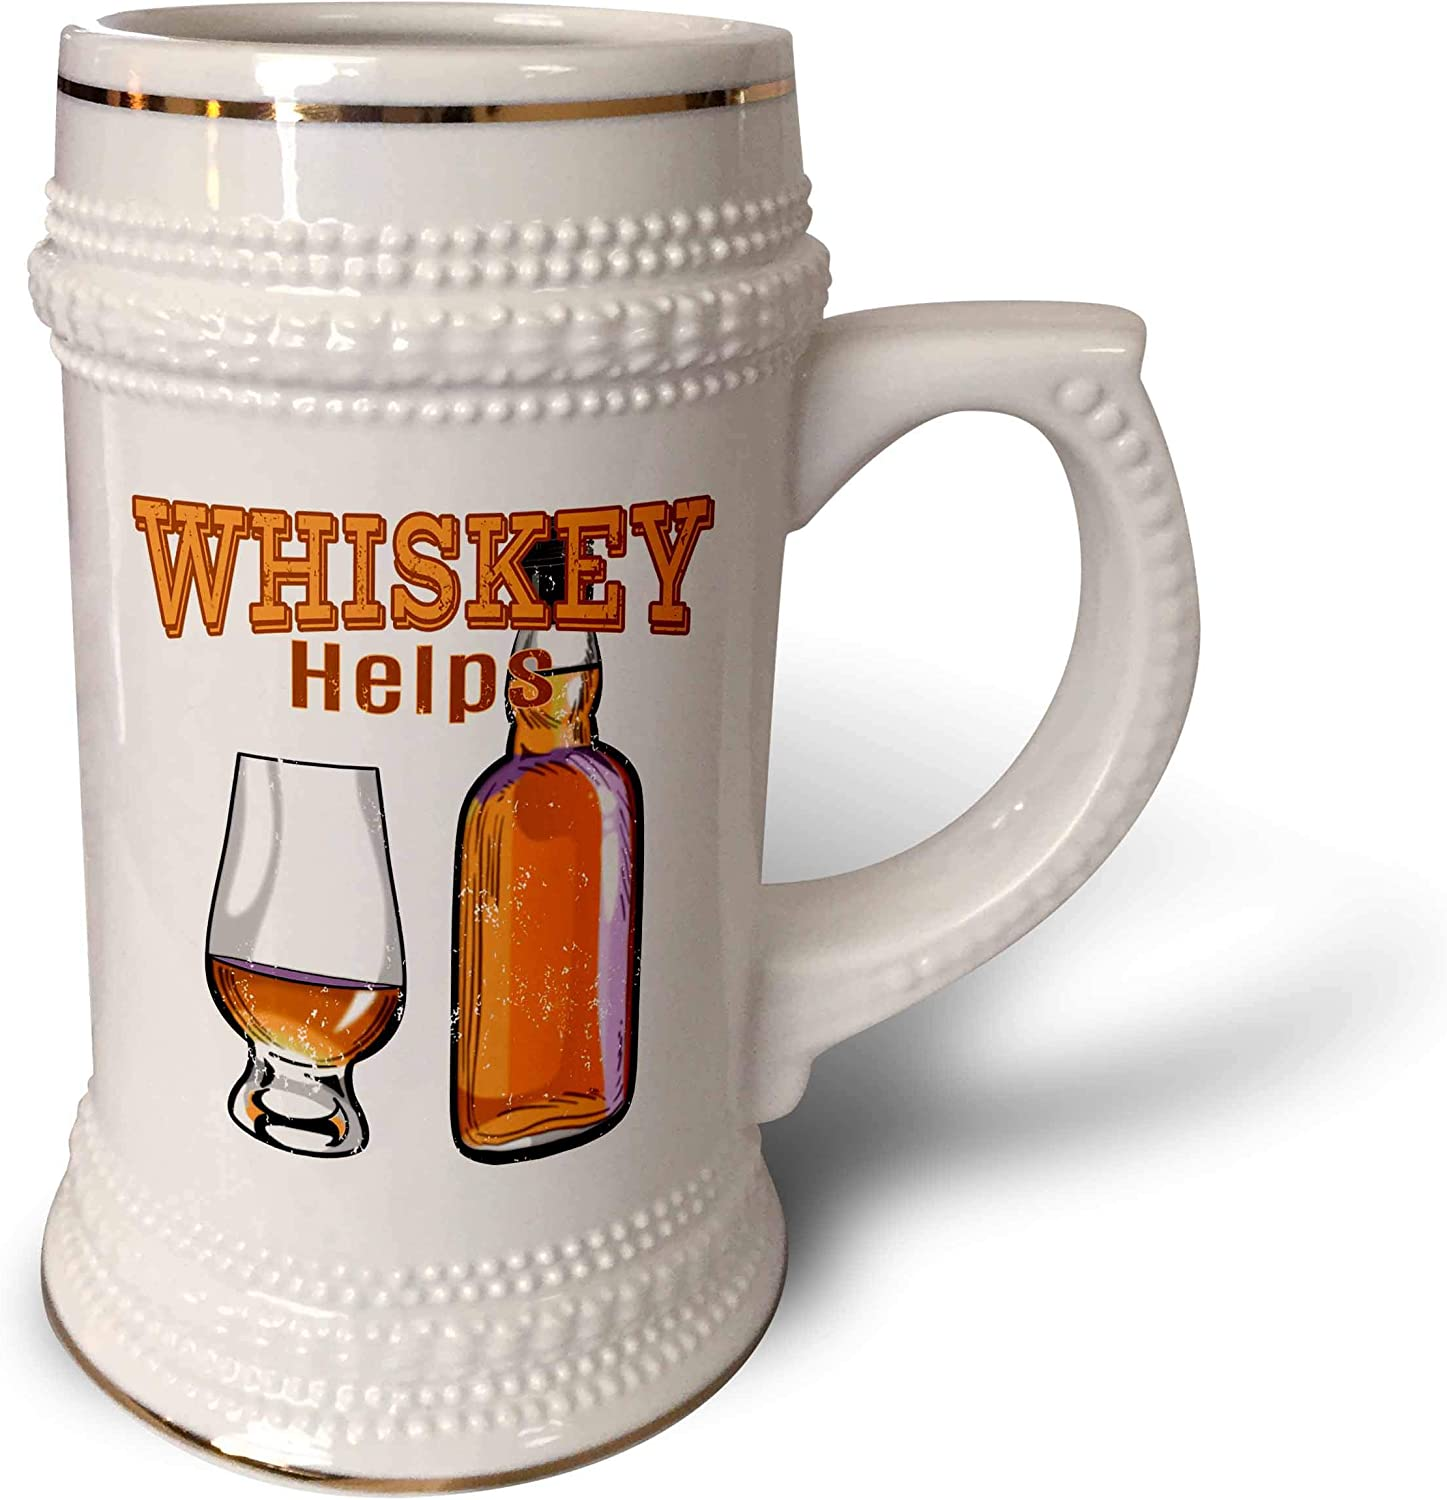 3dRose Funny Drinking Pun Whiskey Helps with a Bottle and Whiskey. - 22oz Stein Mug (STN_326016_1)